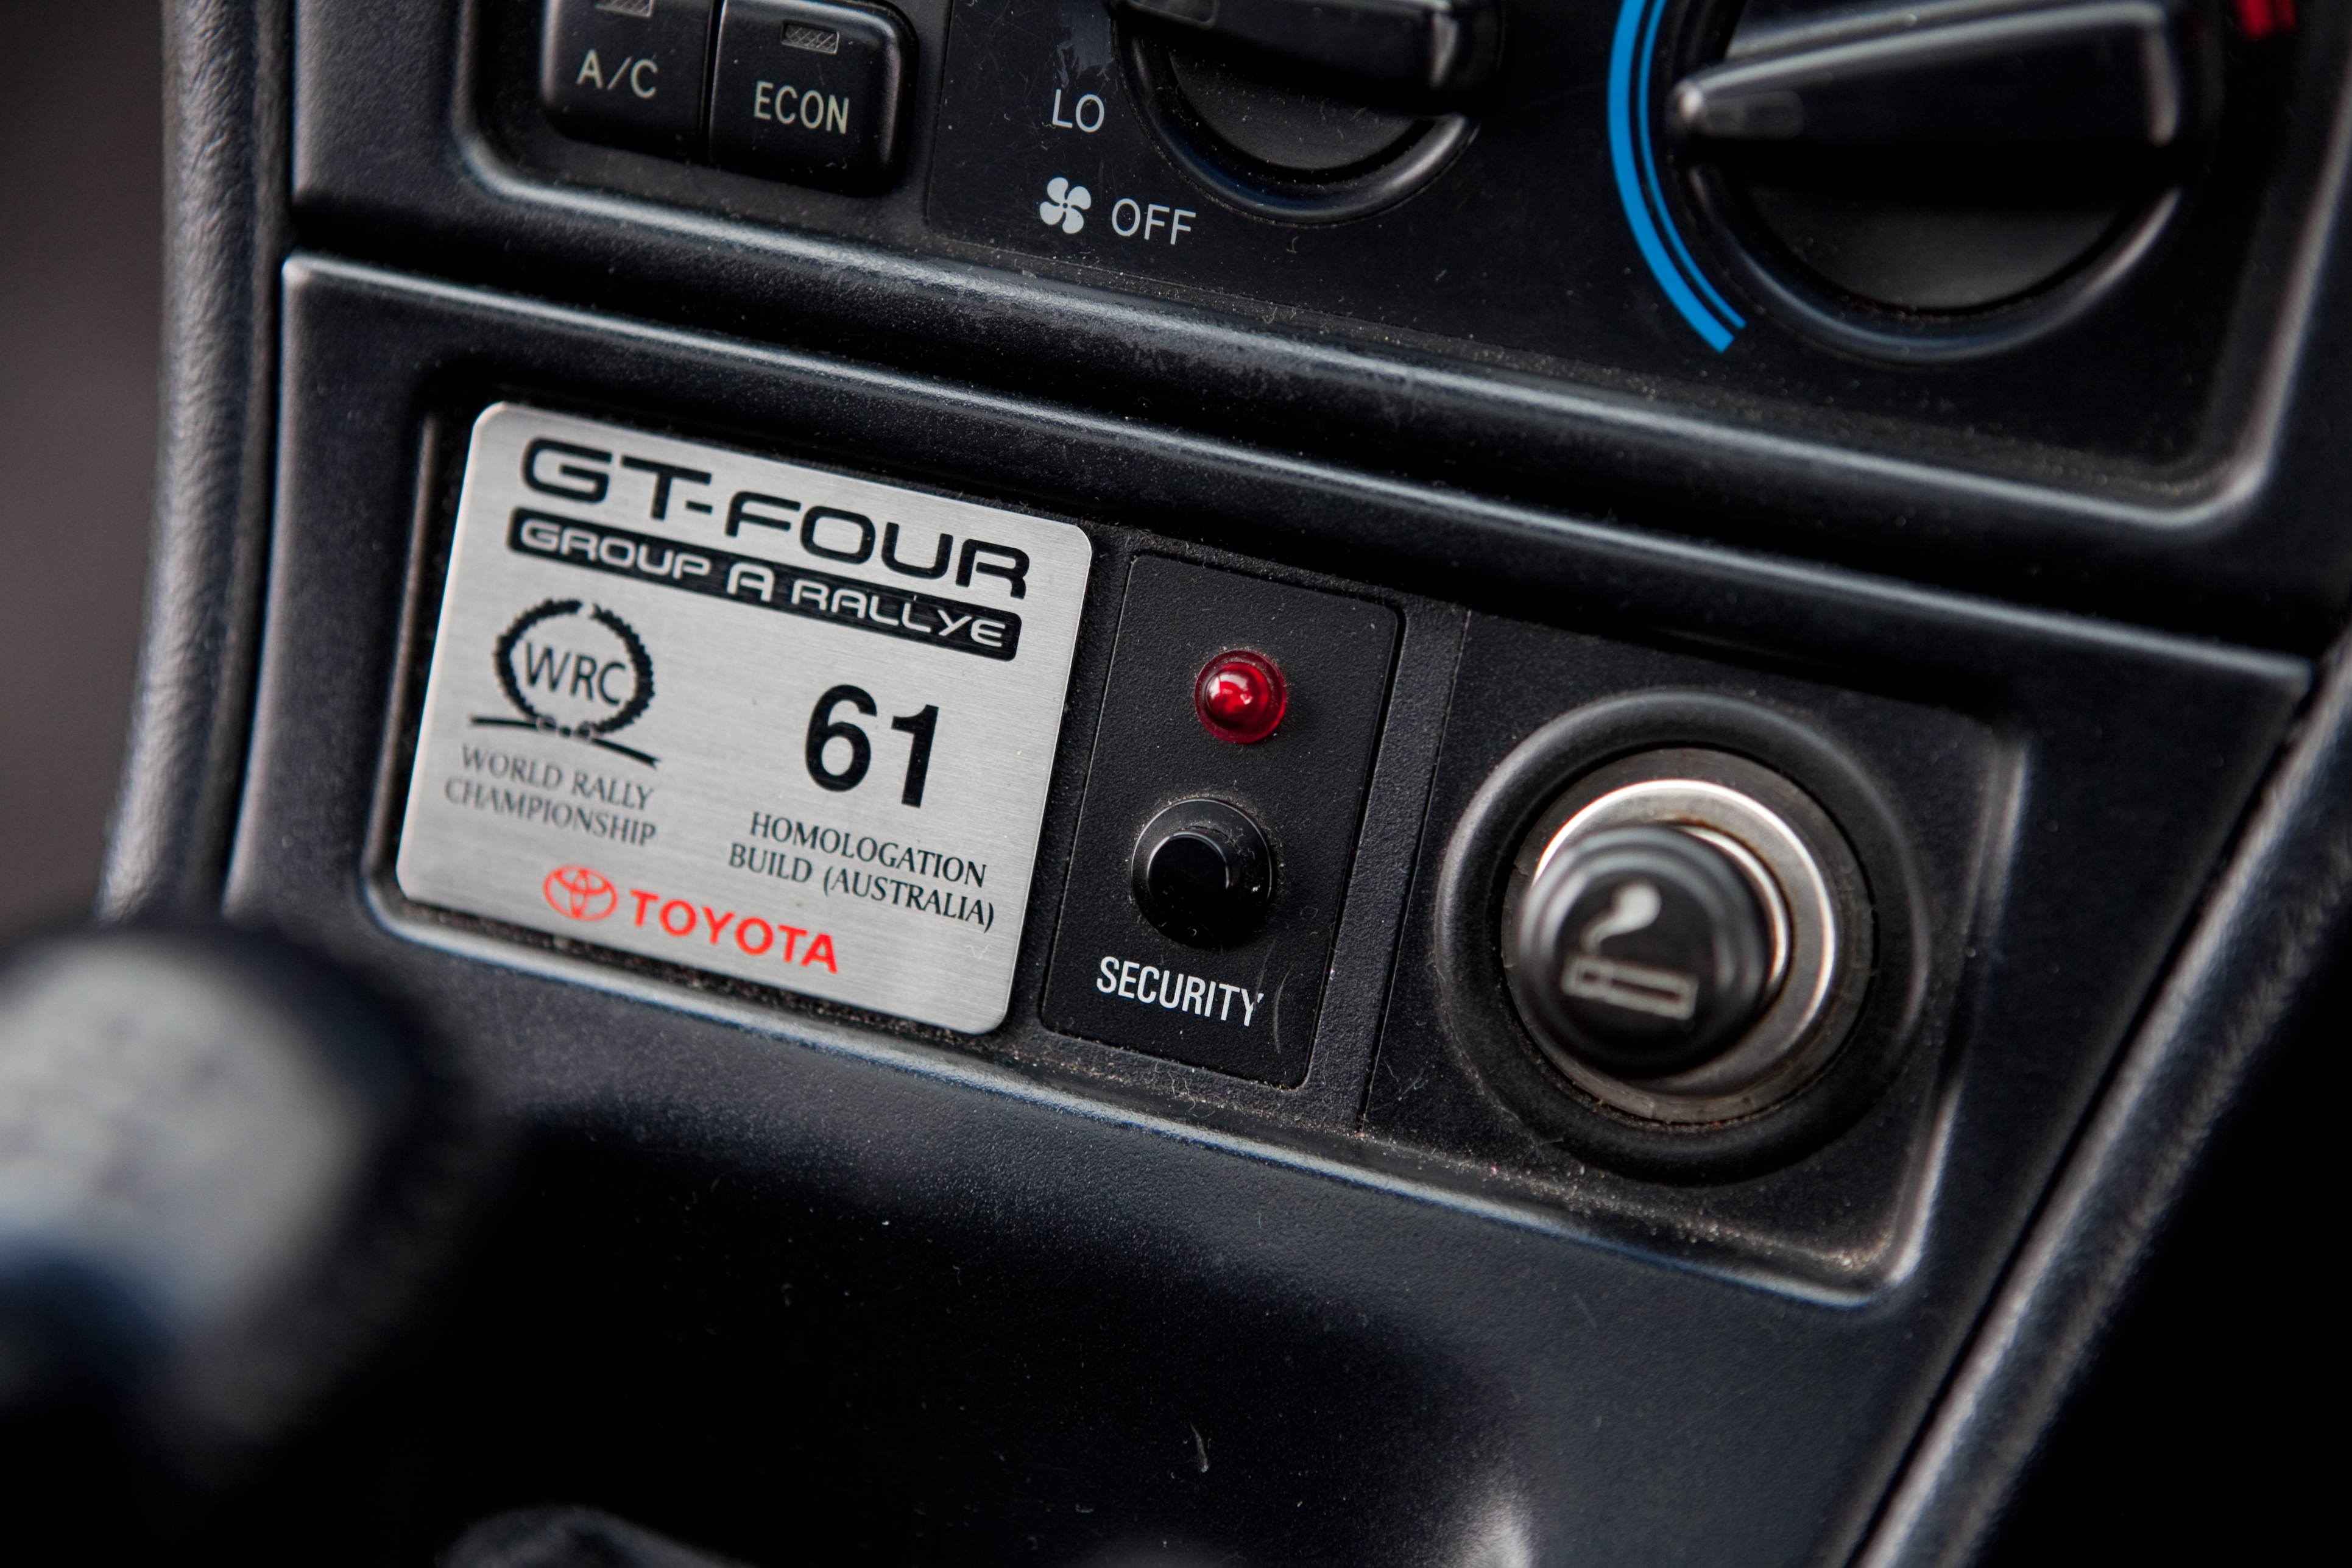 Toyota Celica Gt Four Wikipedia Fielder Pedals Plaque For Car Number 61 Of The 77 Australian Group A Rallye